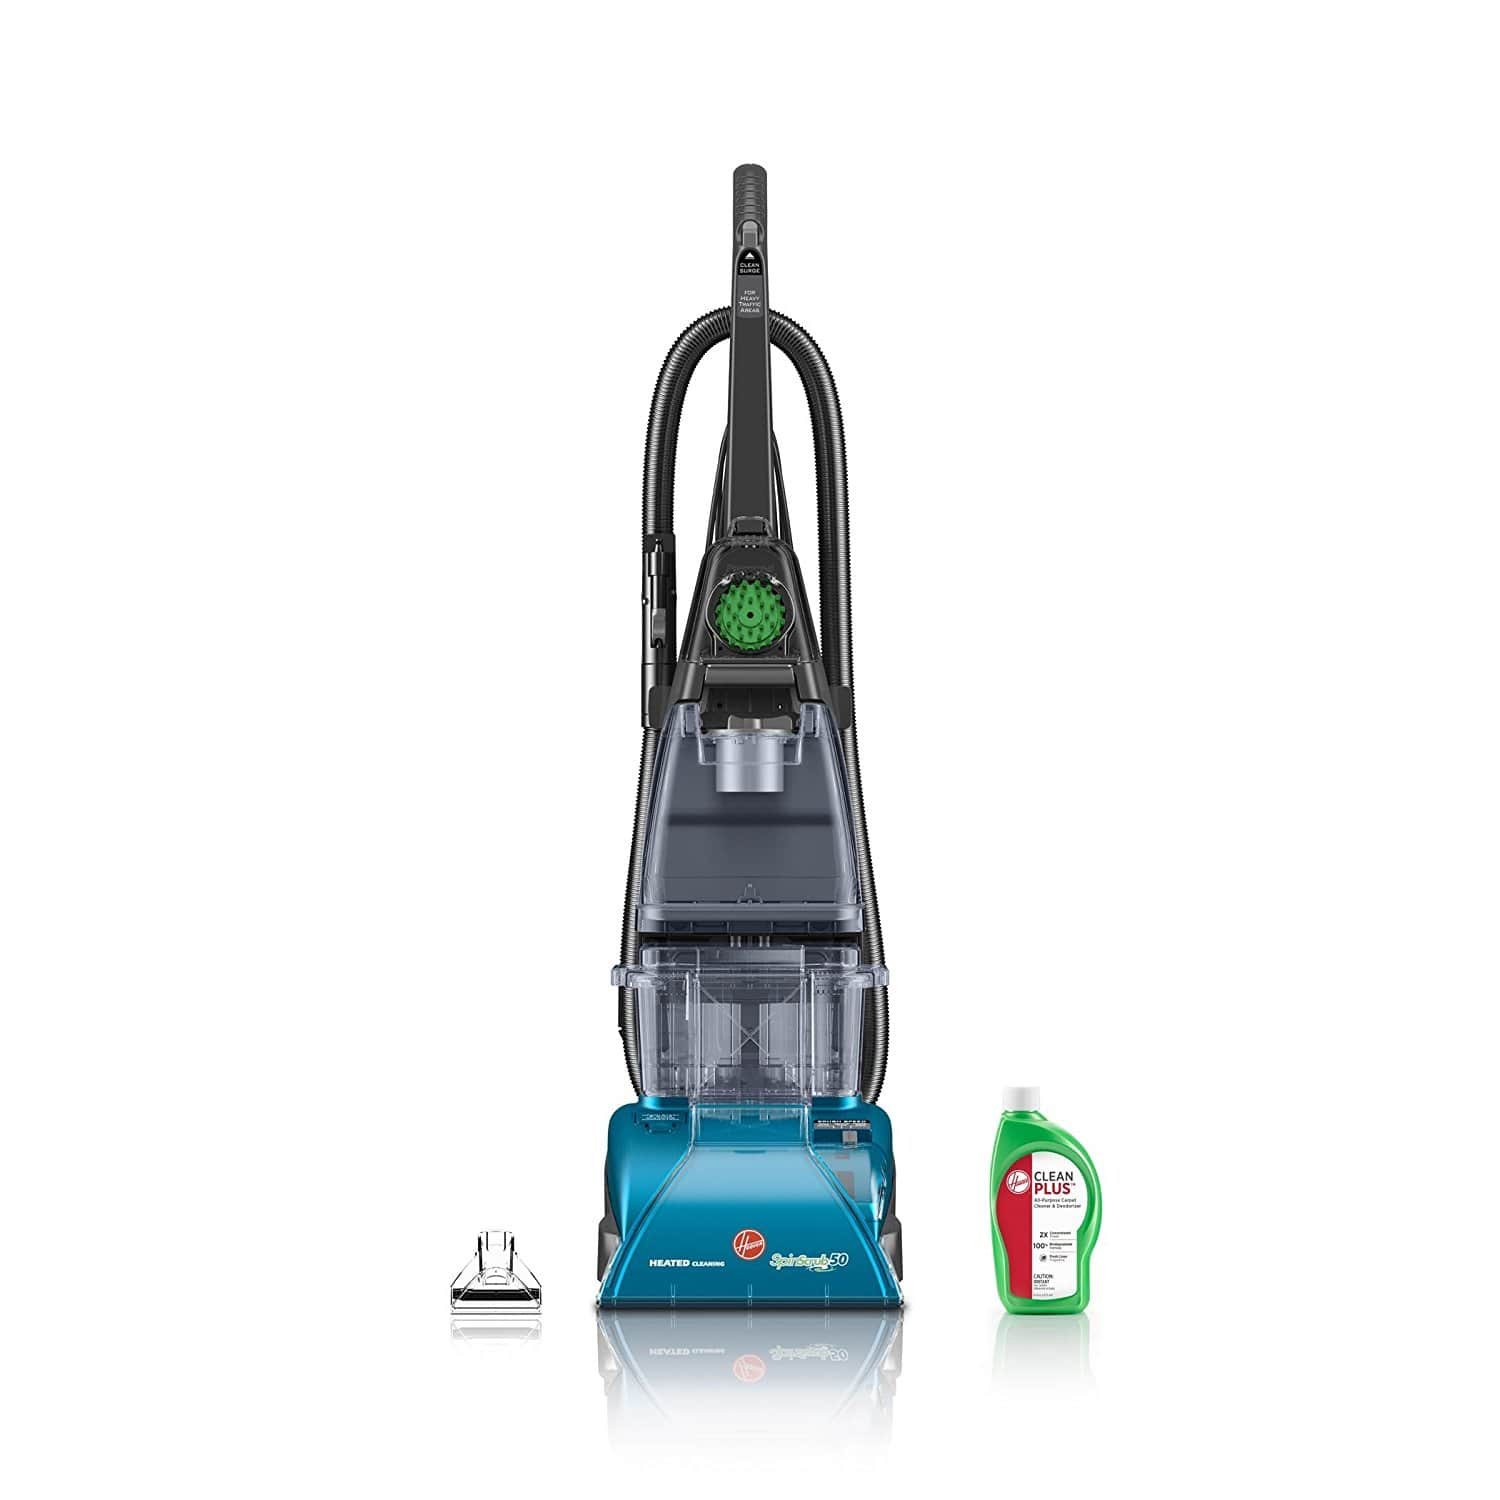 Hoover SteamVac Carpet Cleaner with Clean Surge Slickdeals